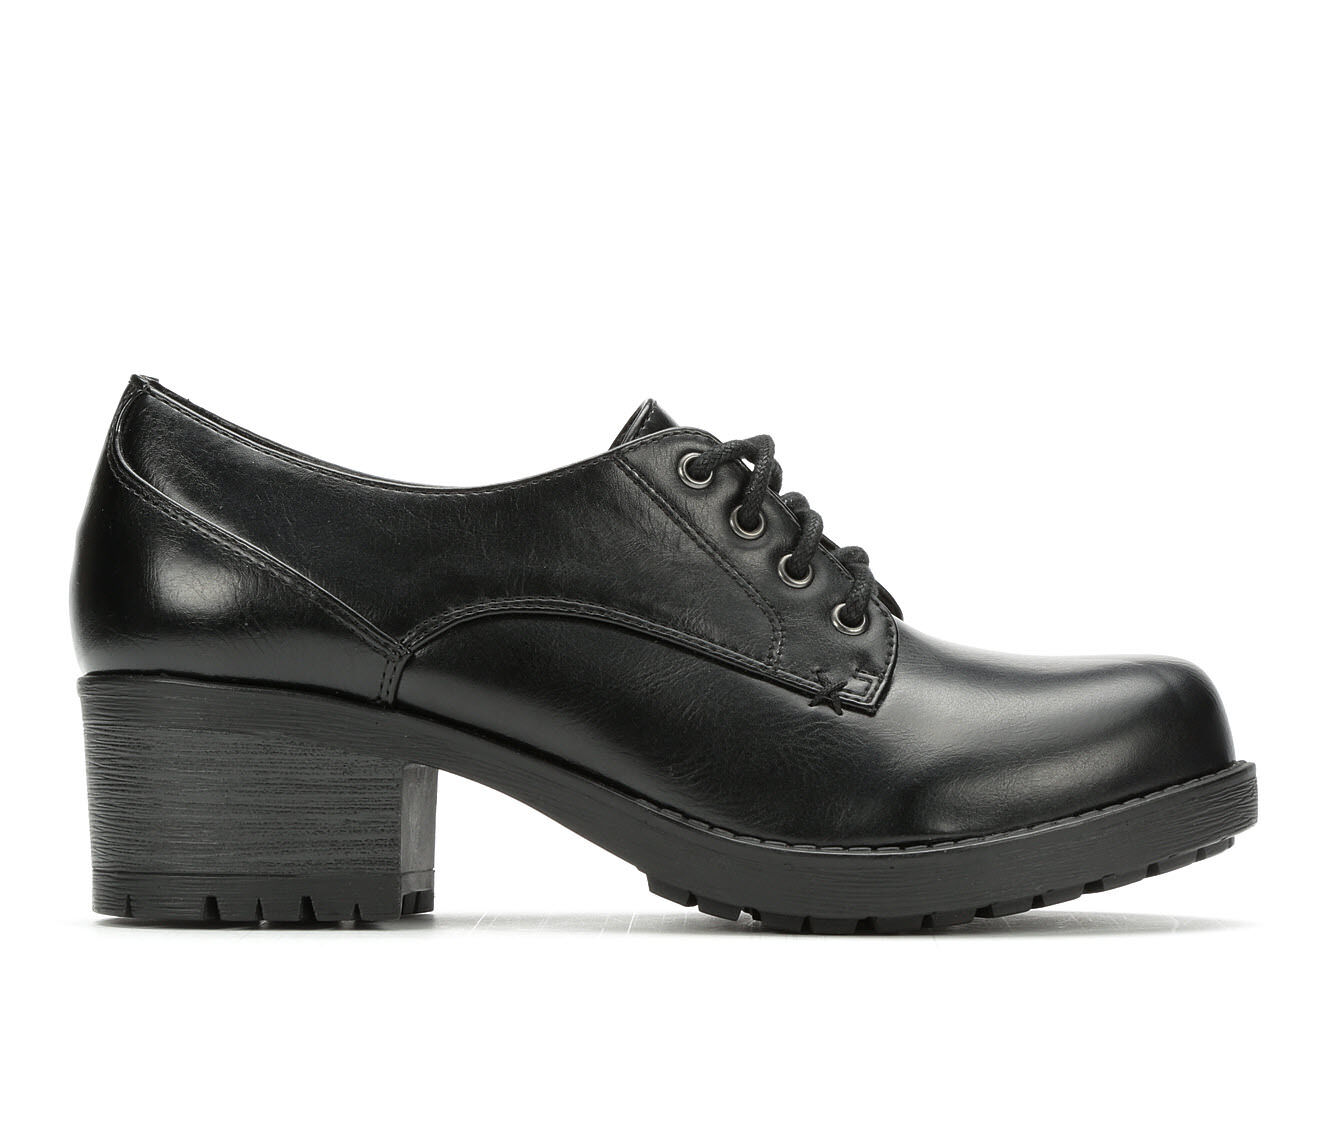 Women's Unr8ed Paxton Oxfords. Women's Unr8ed Paxton Oxfords